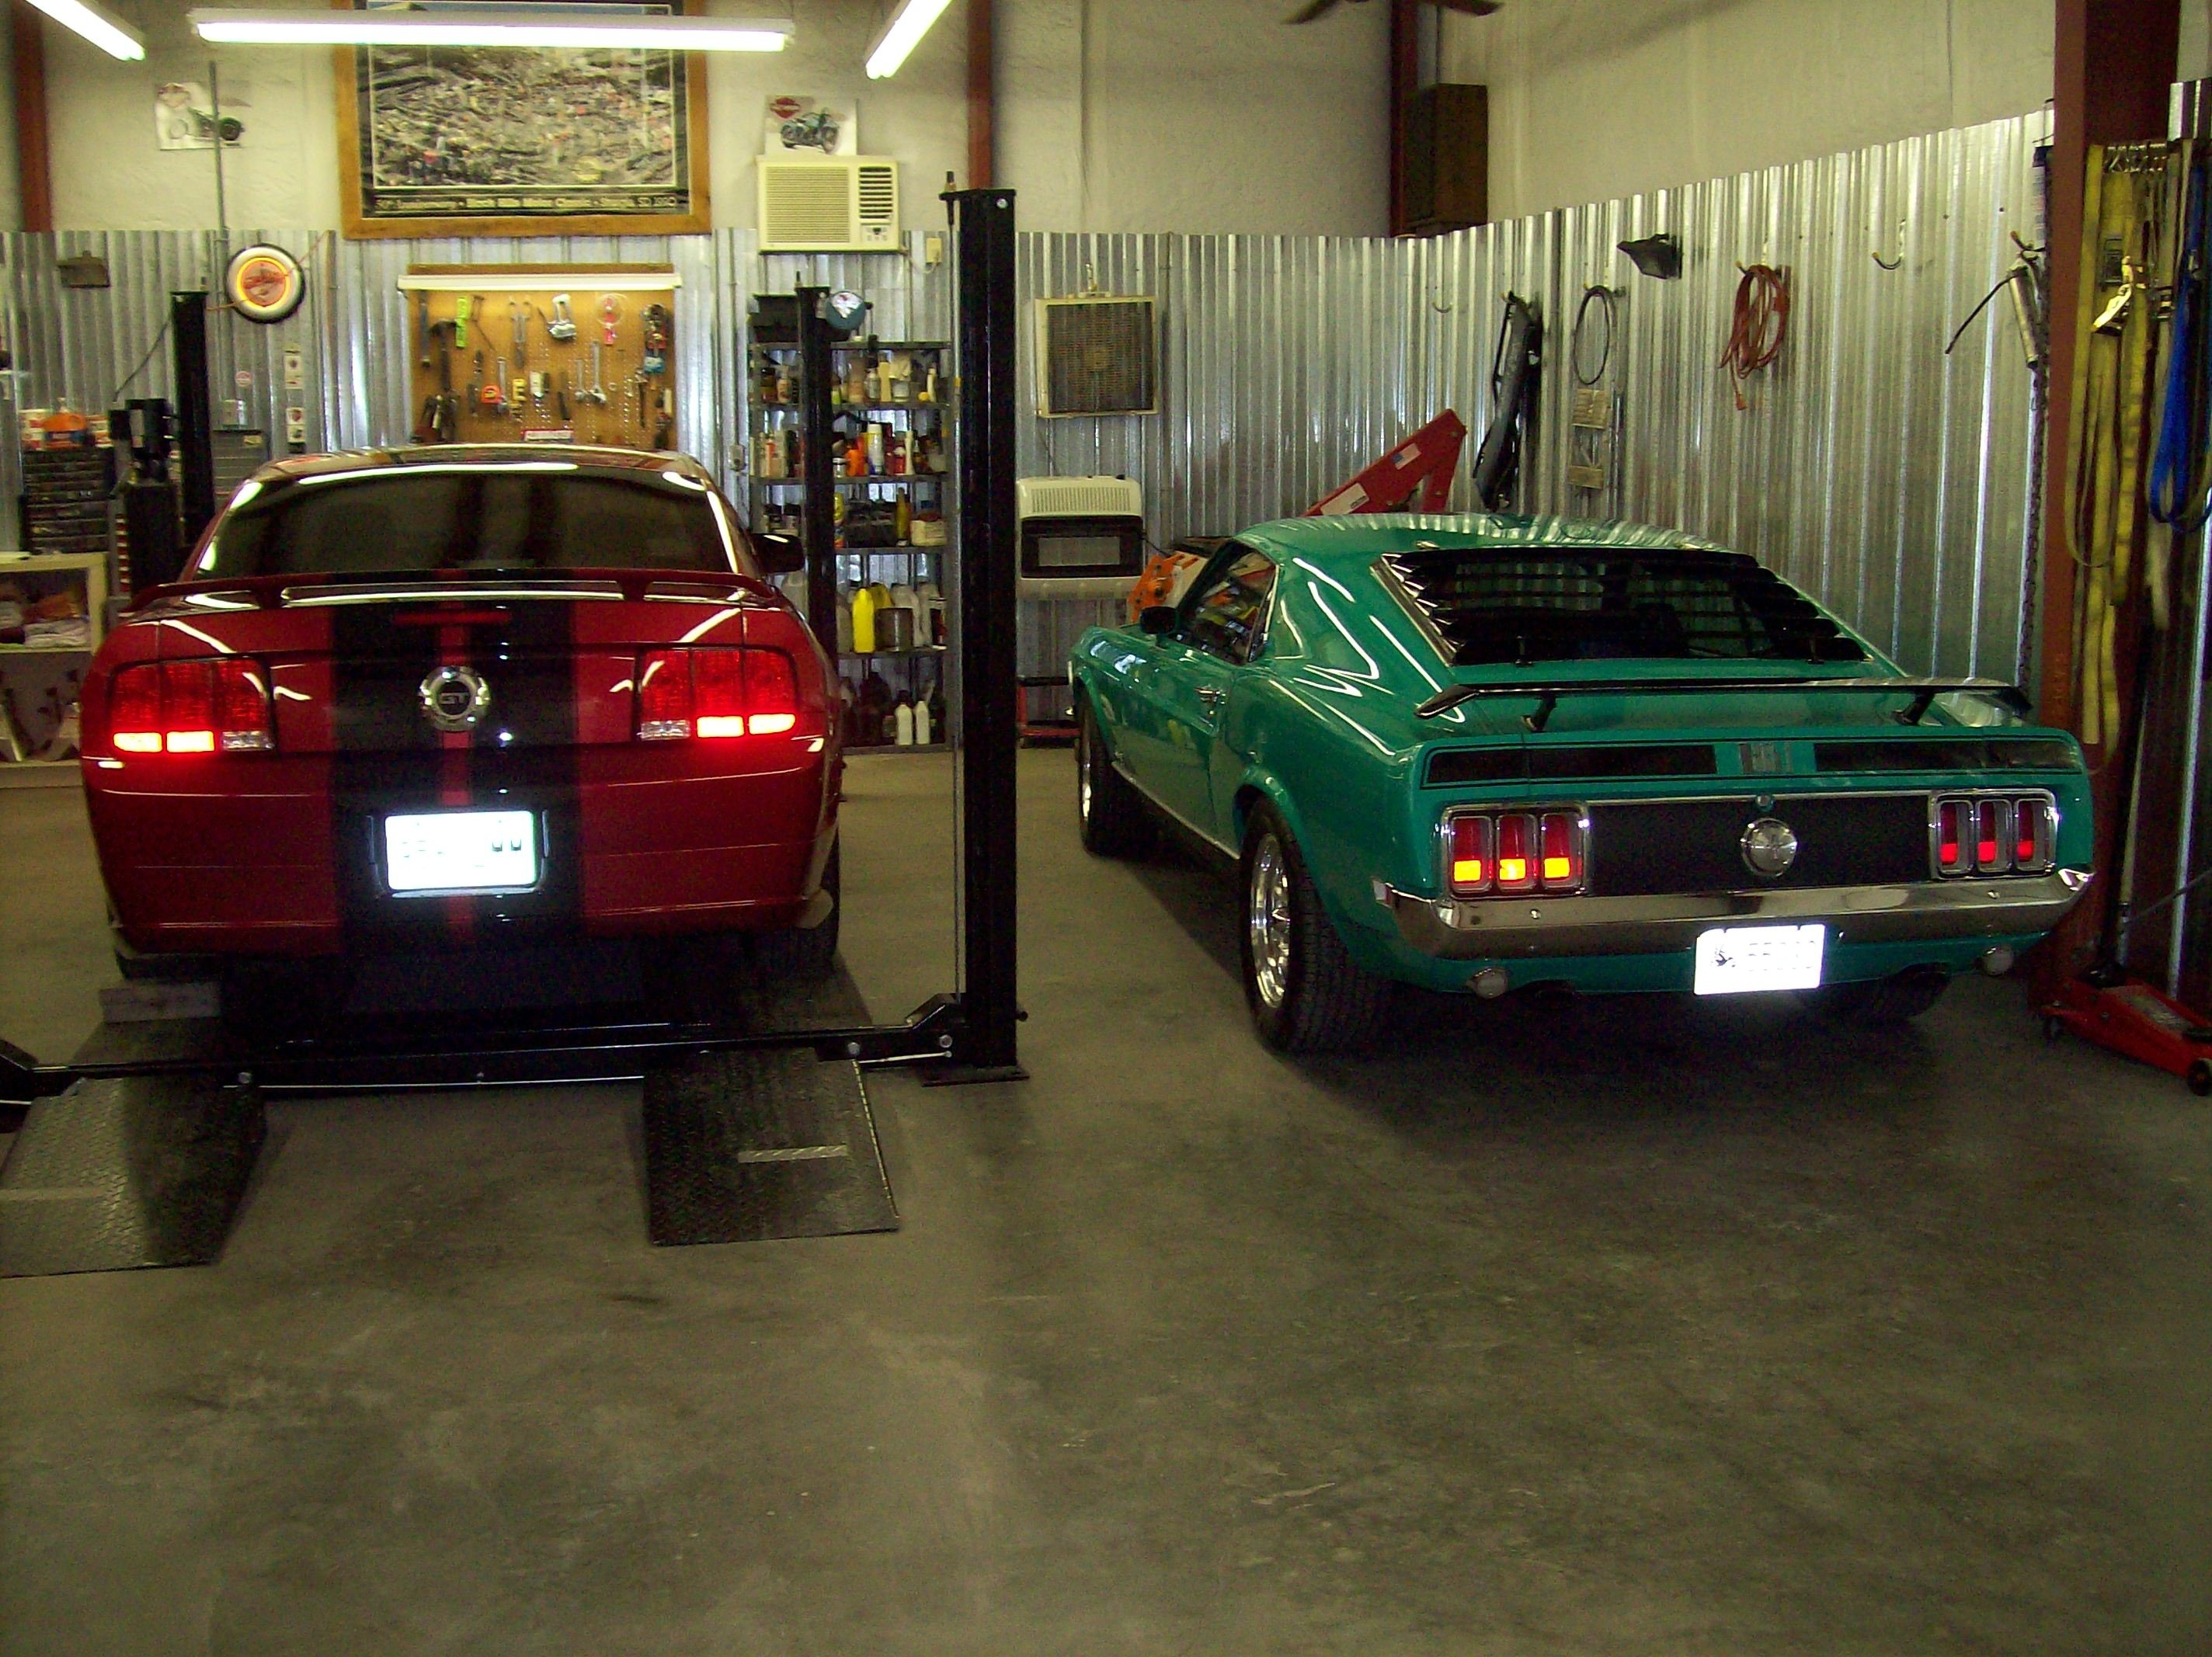 10 Most Recommended Garage Remodeling Ideas Man Cave decor tips amazing garage design with mancave and polished